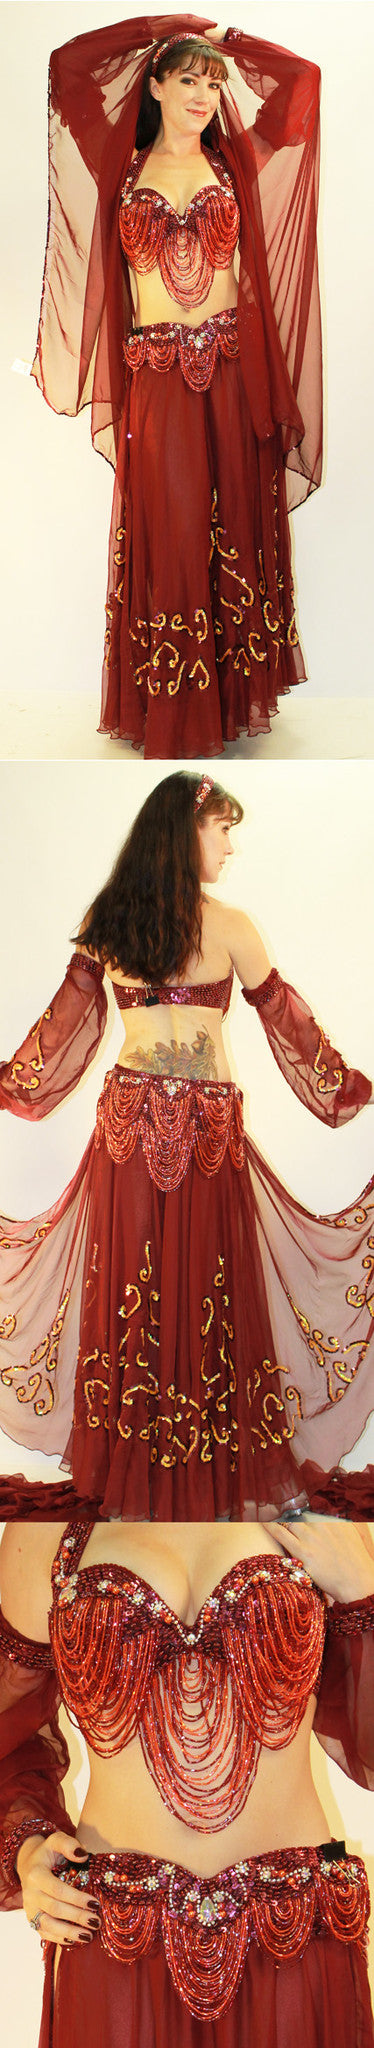 Pharaonics of Egypt Pharaonics Of Egypt Skirt/Veil Set